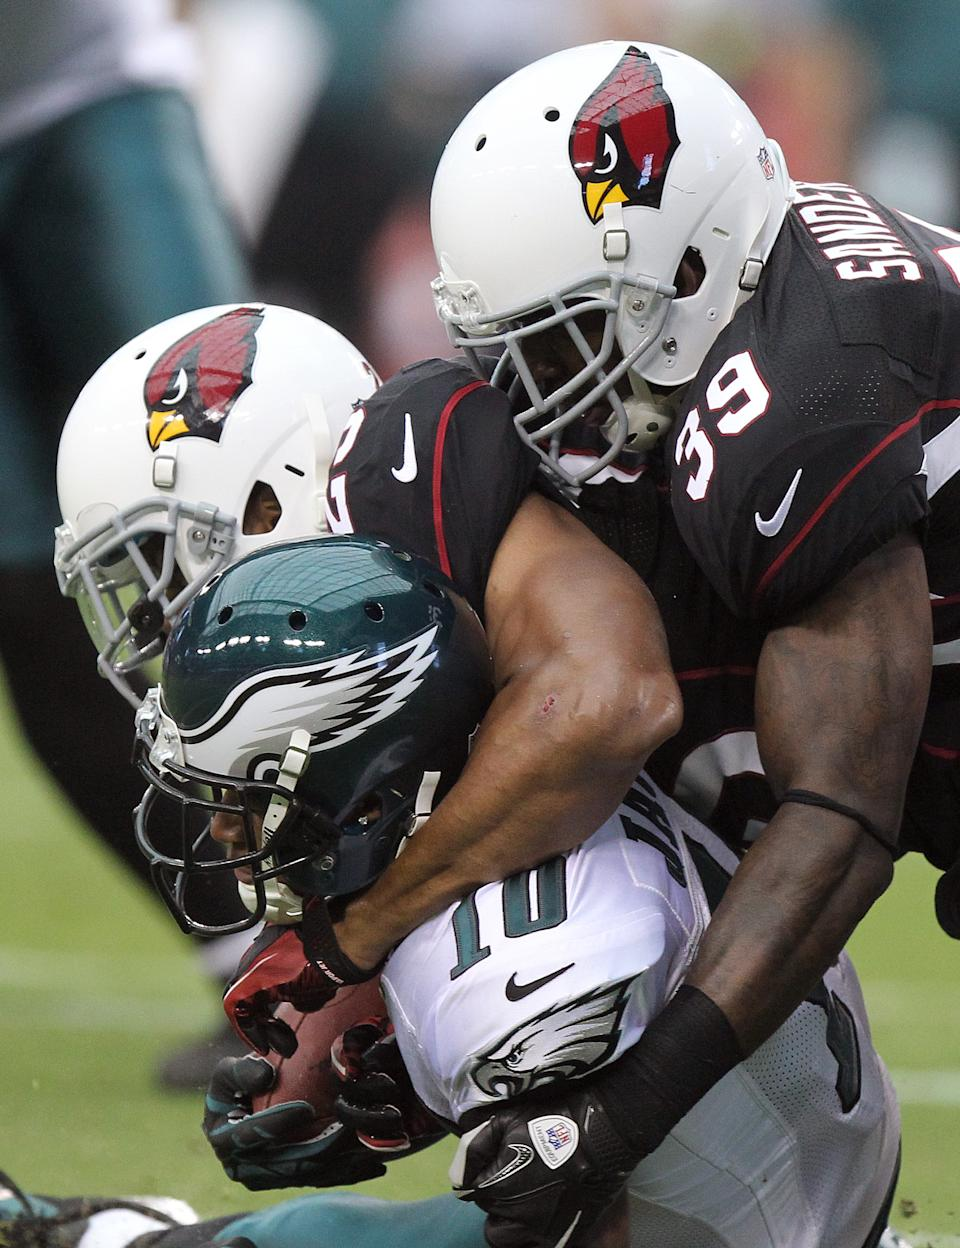 Philadelphia Eagles wide receiver DeSean Jackson, left, is tackled shy of the end zone by Arizona Cardinals safeties Kerry Rhodes, center, and James Sanders, right, to prevent a touchdown in the second quarter of an NFL football game on Sunday, Sept. 23, 2012, in Glendale, Ariz. (AP Photo/Paul Connors)